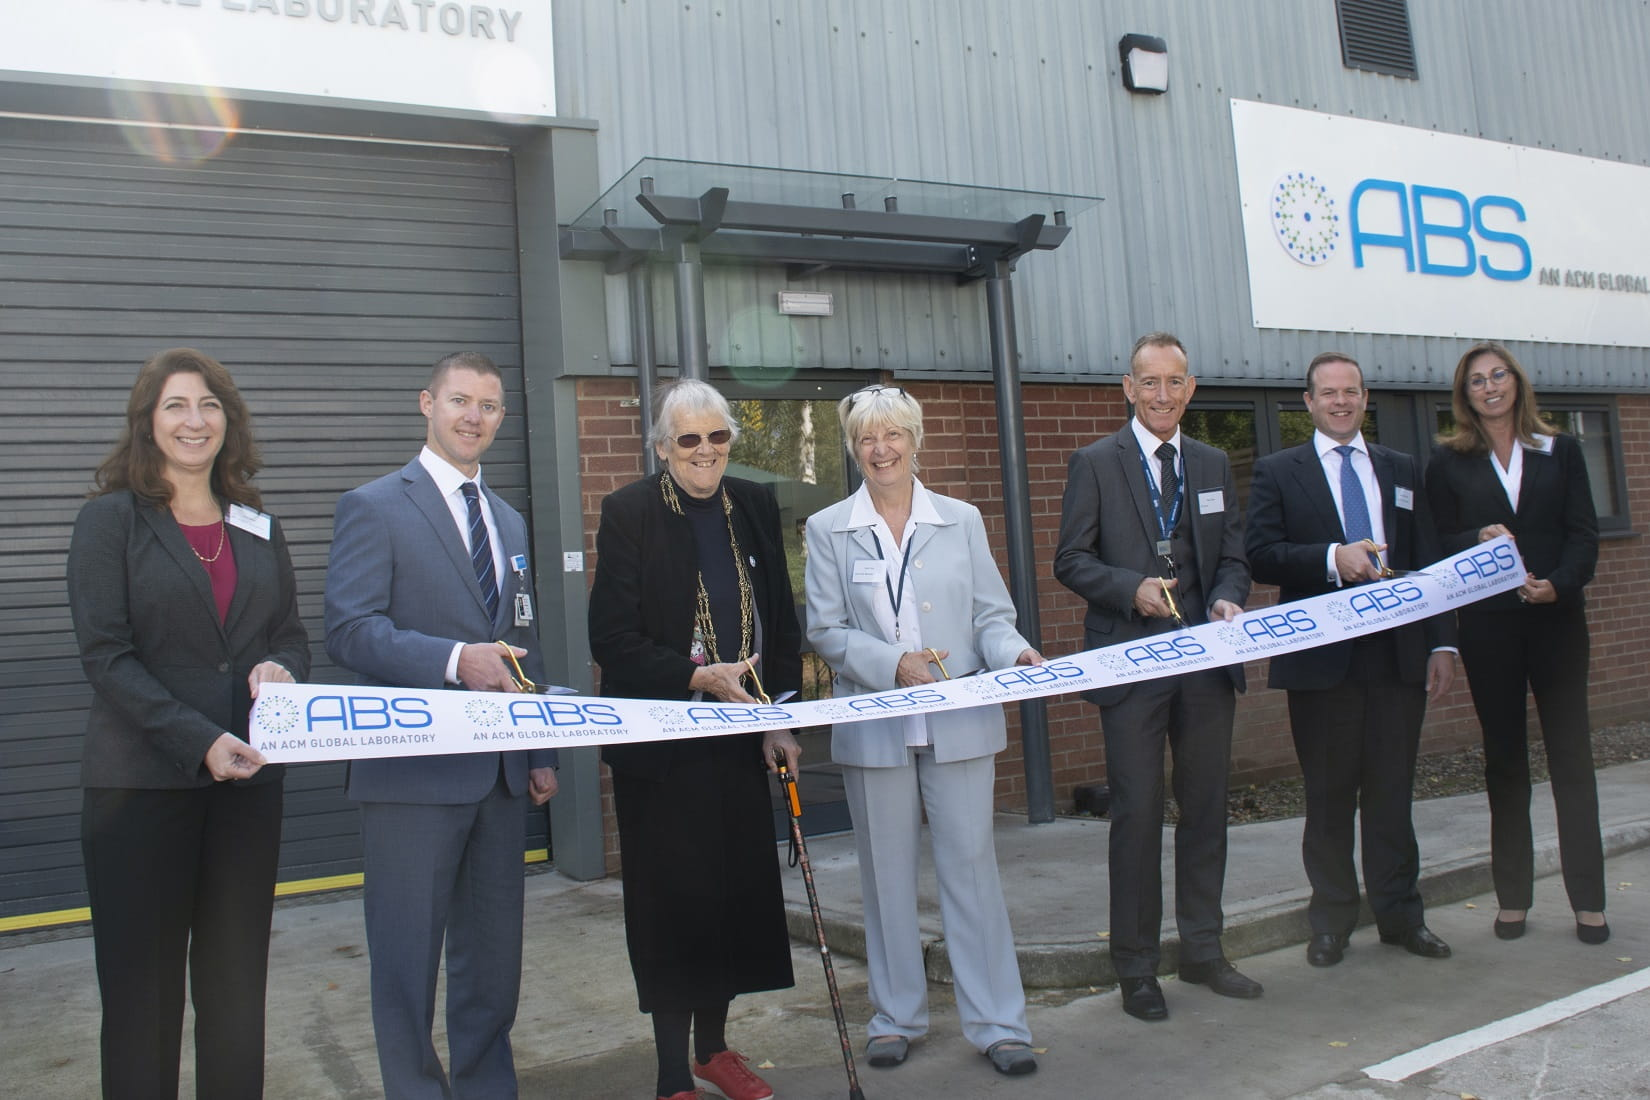 Ribbon Cutting of ABS Laboratories in York